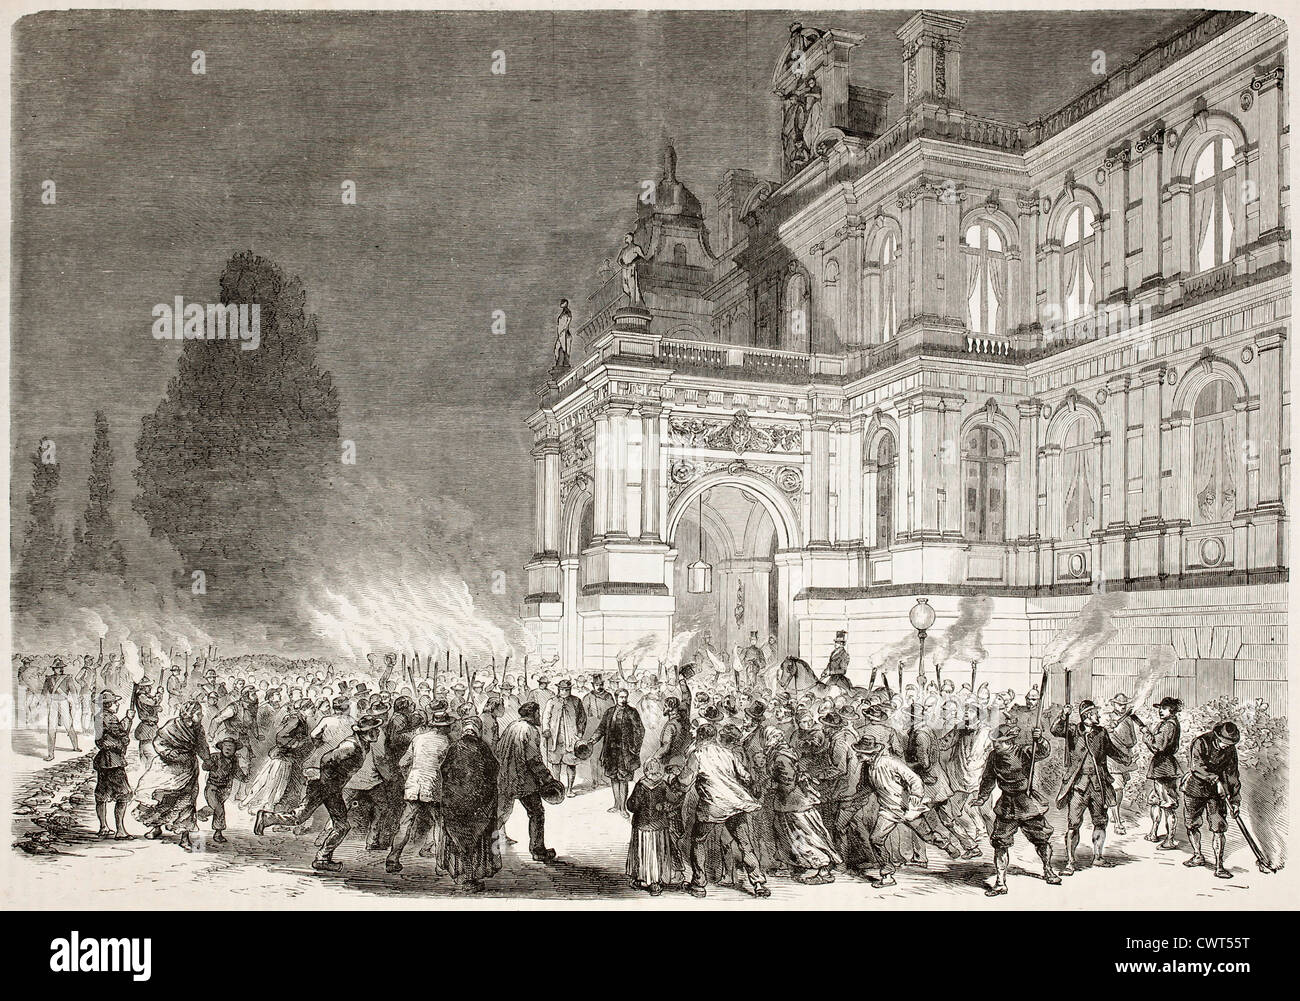 Napoleon III departing from Chateau-Les-Ferrieres - Stock Image